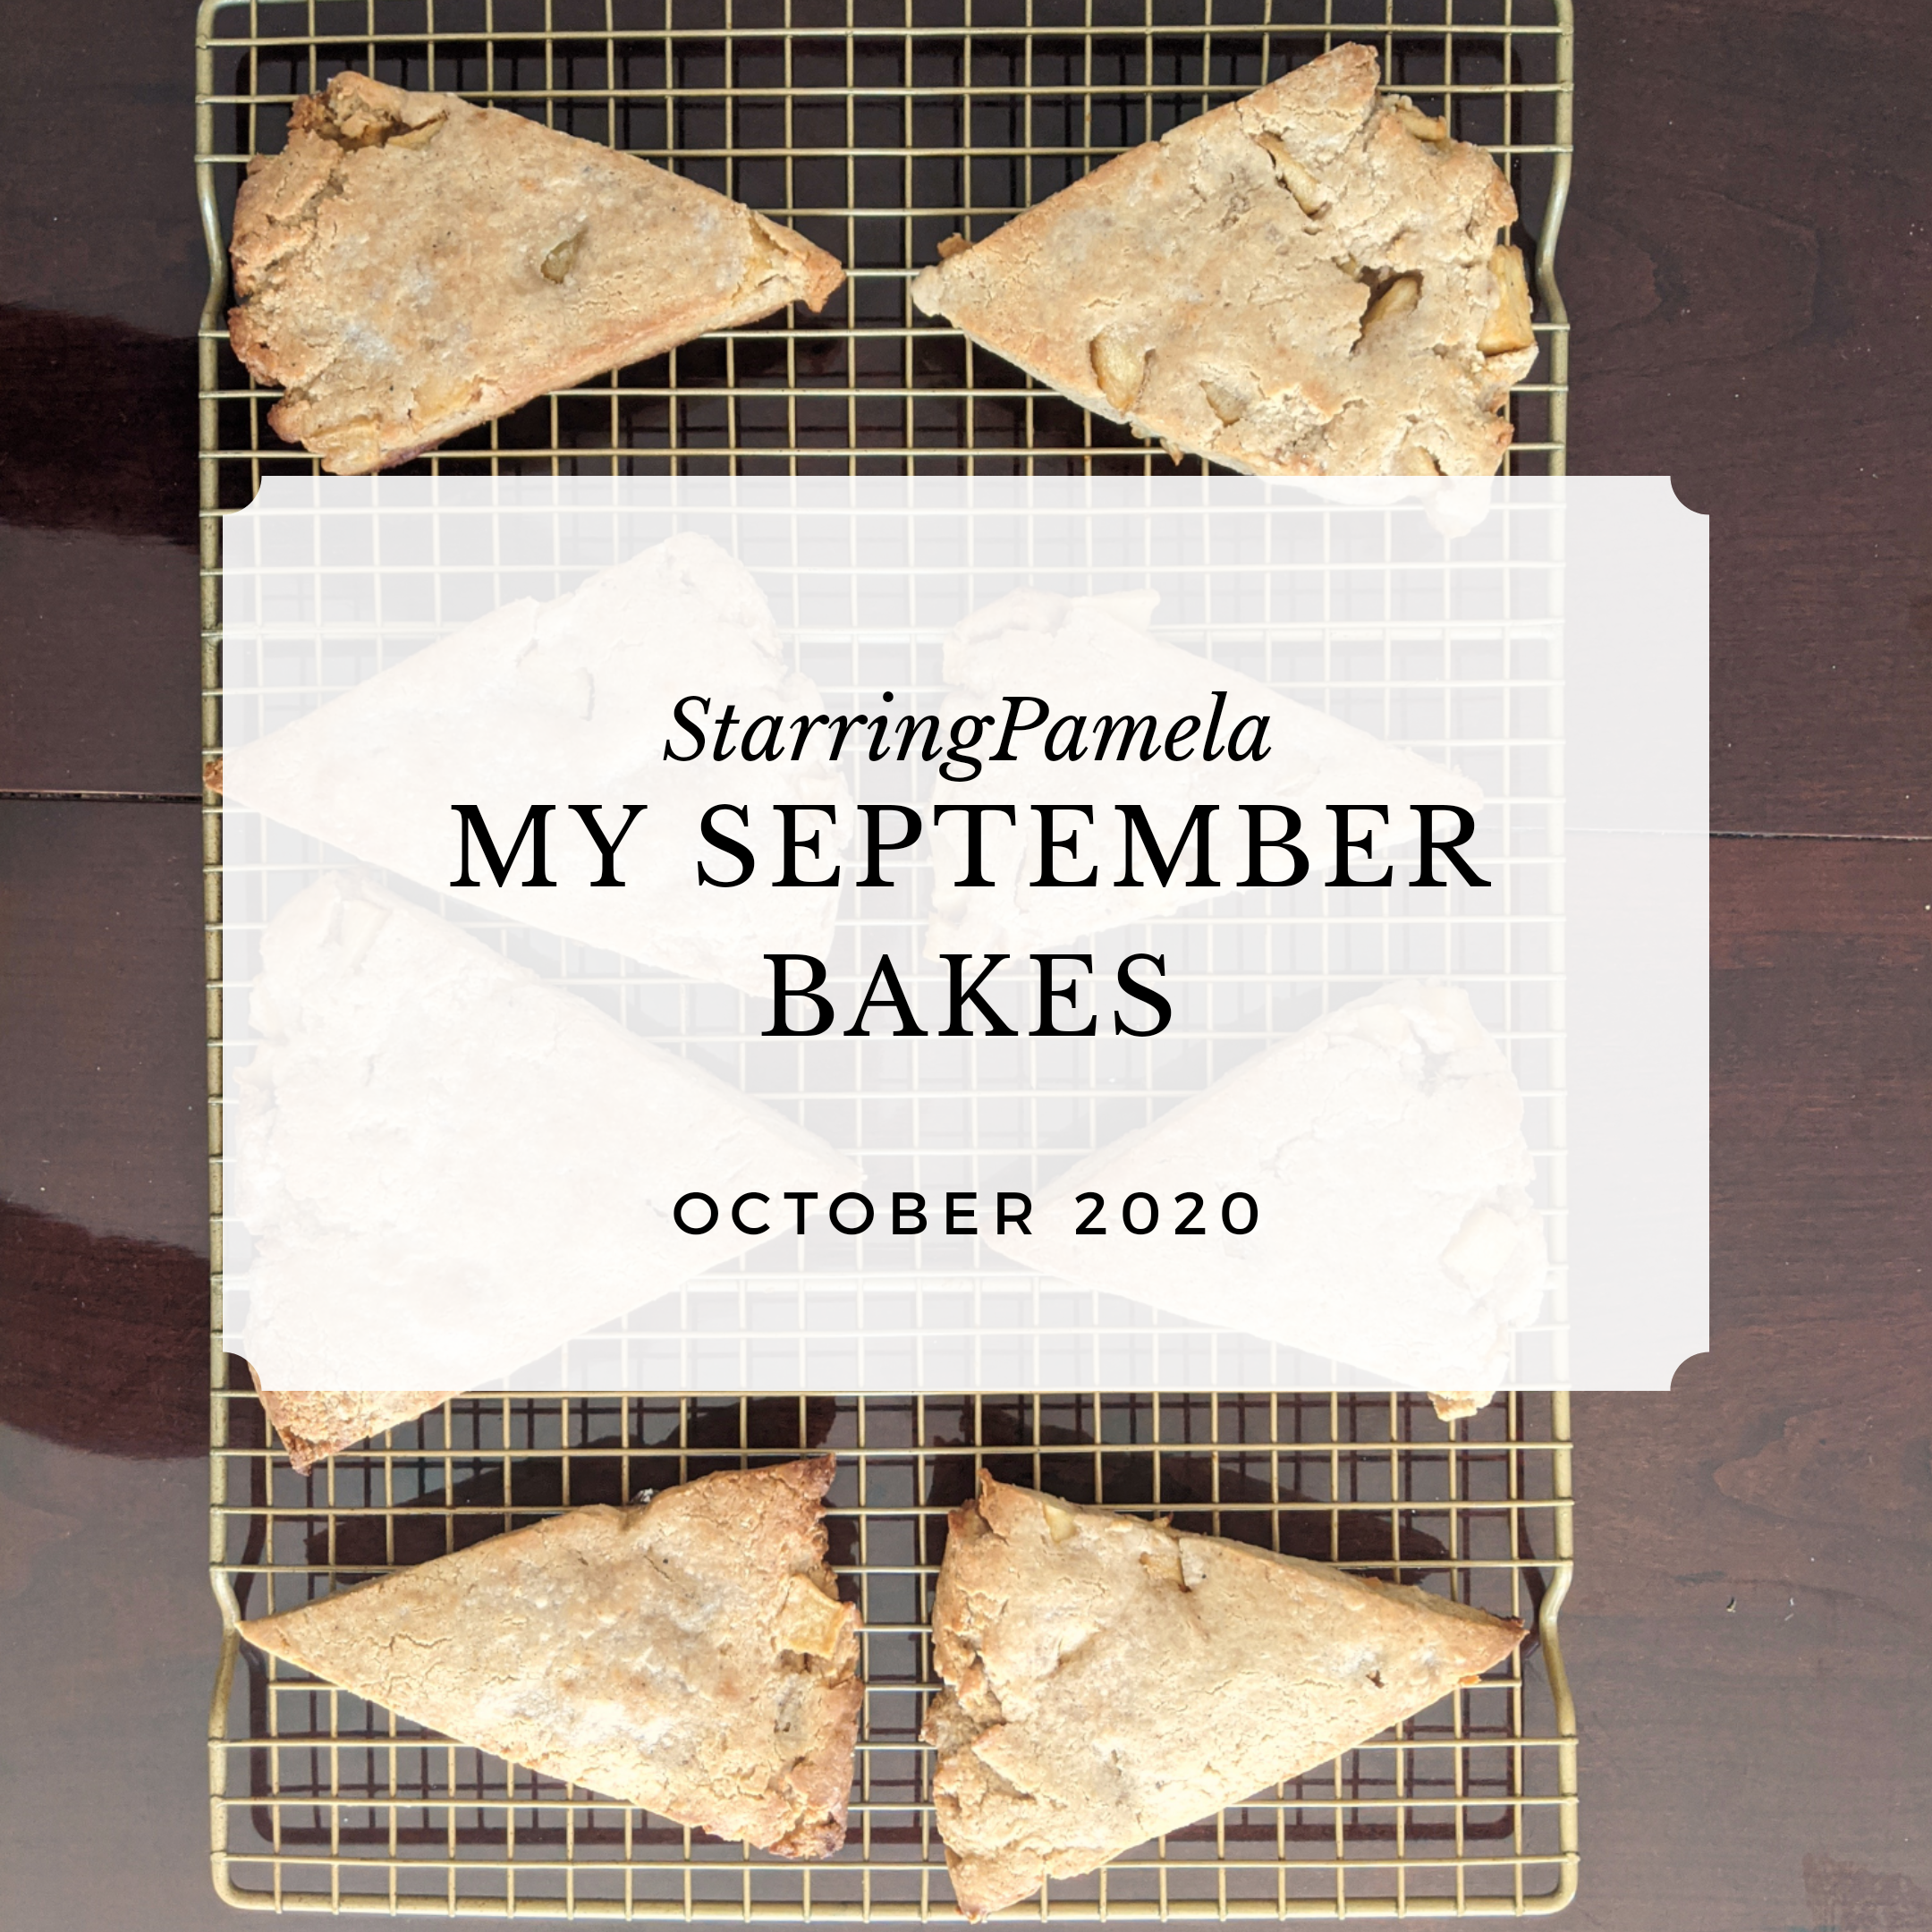 my september bakes featured image